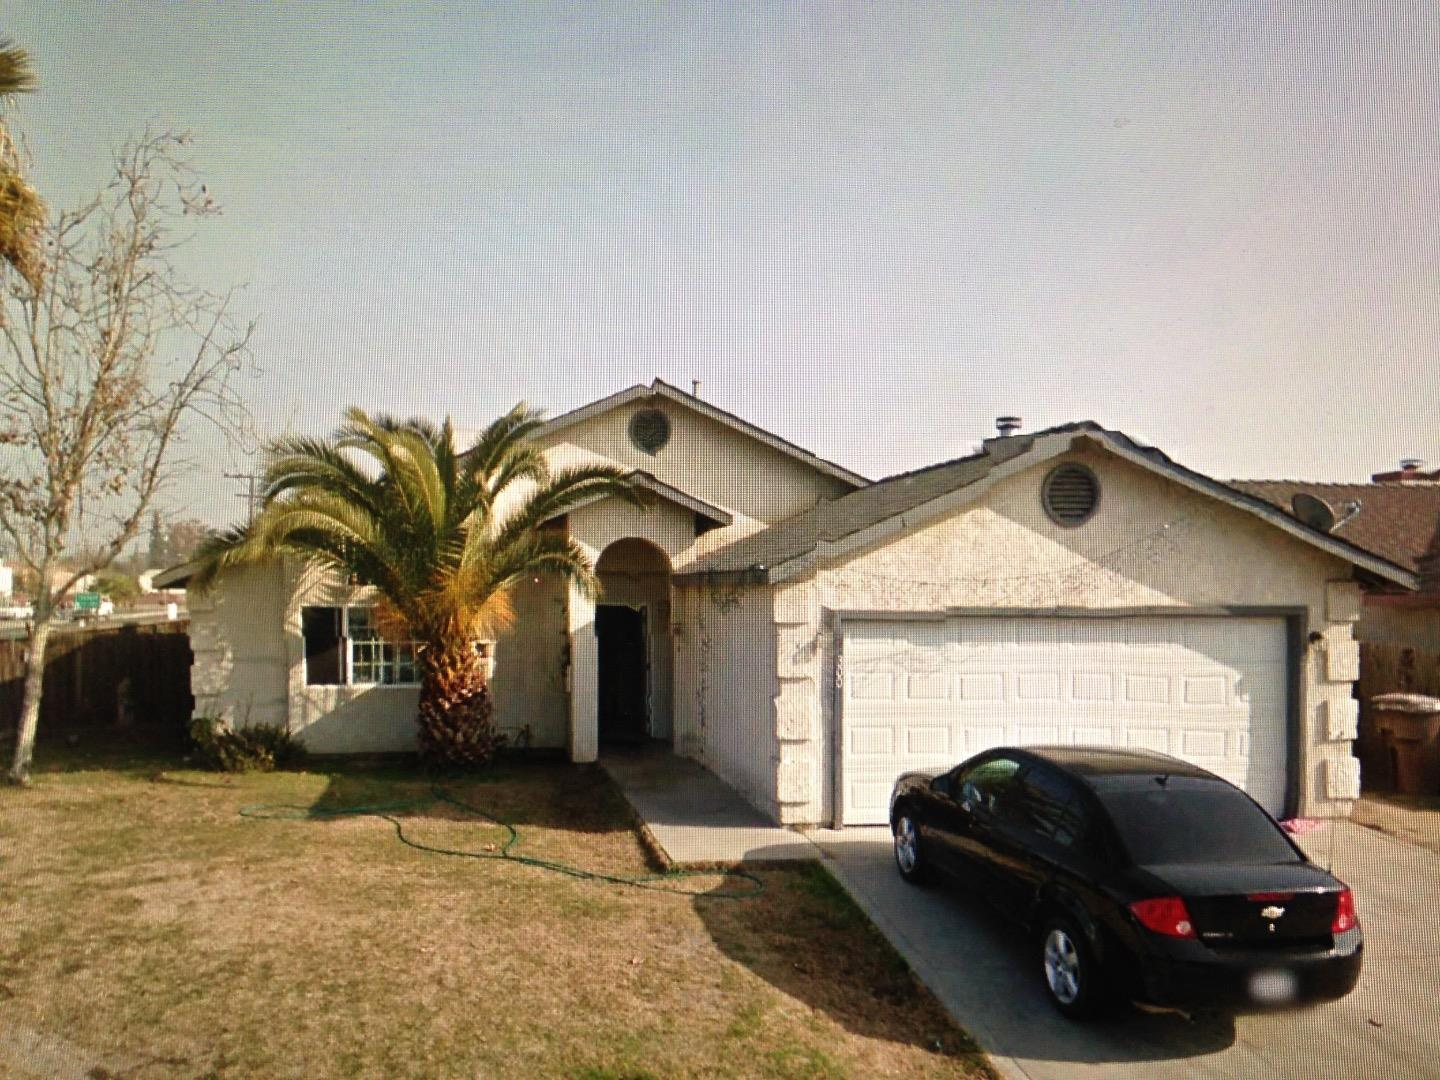 Single Family Home for Sale at 300 Marin Street Tulare, California 93274 United States